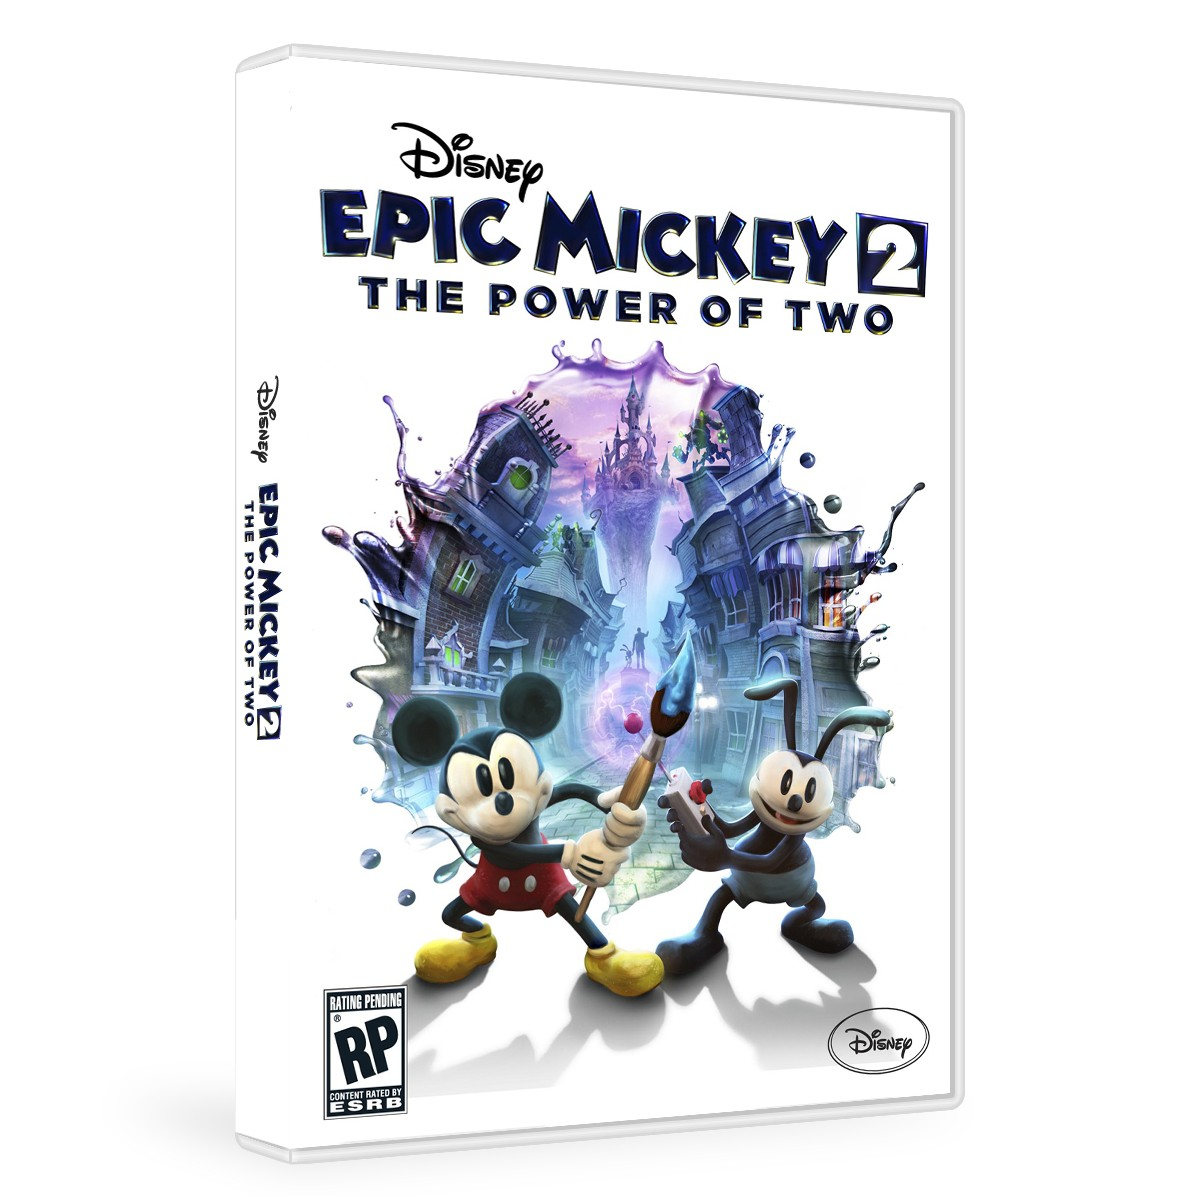 Watch: Opening Of 'Epic Mickey 2' Features Musical Number